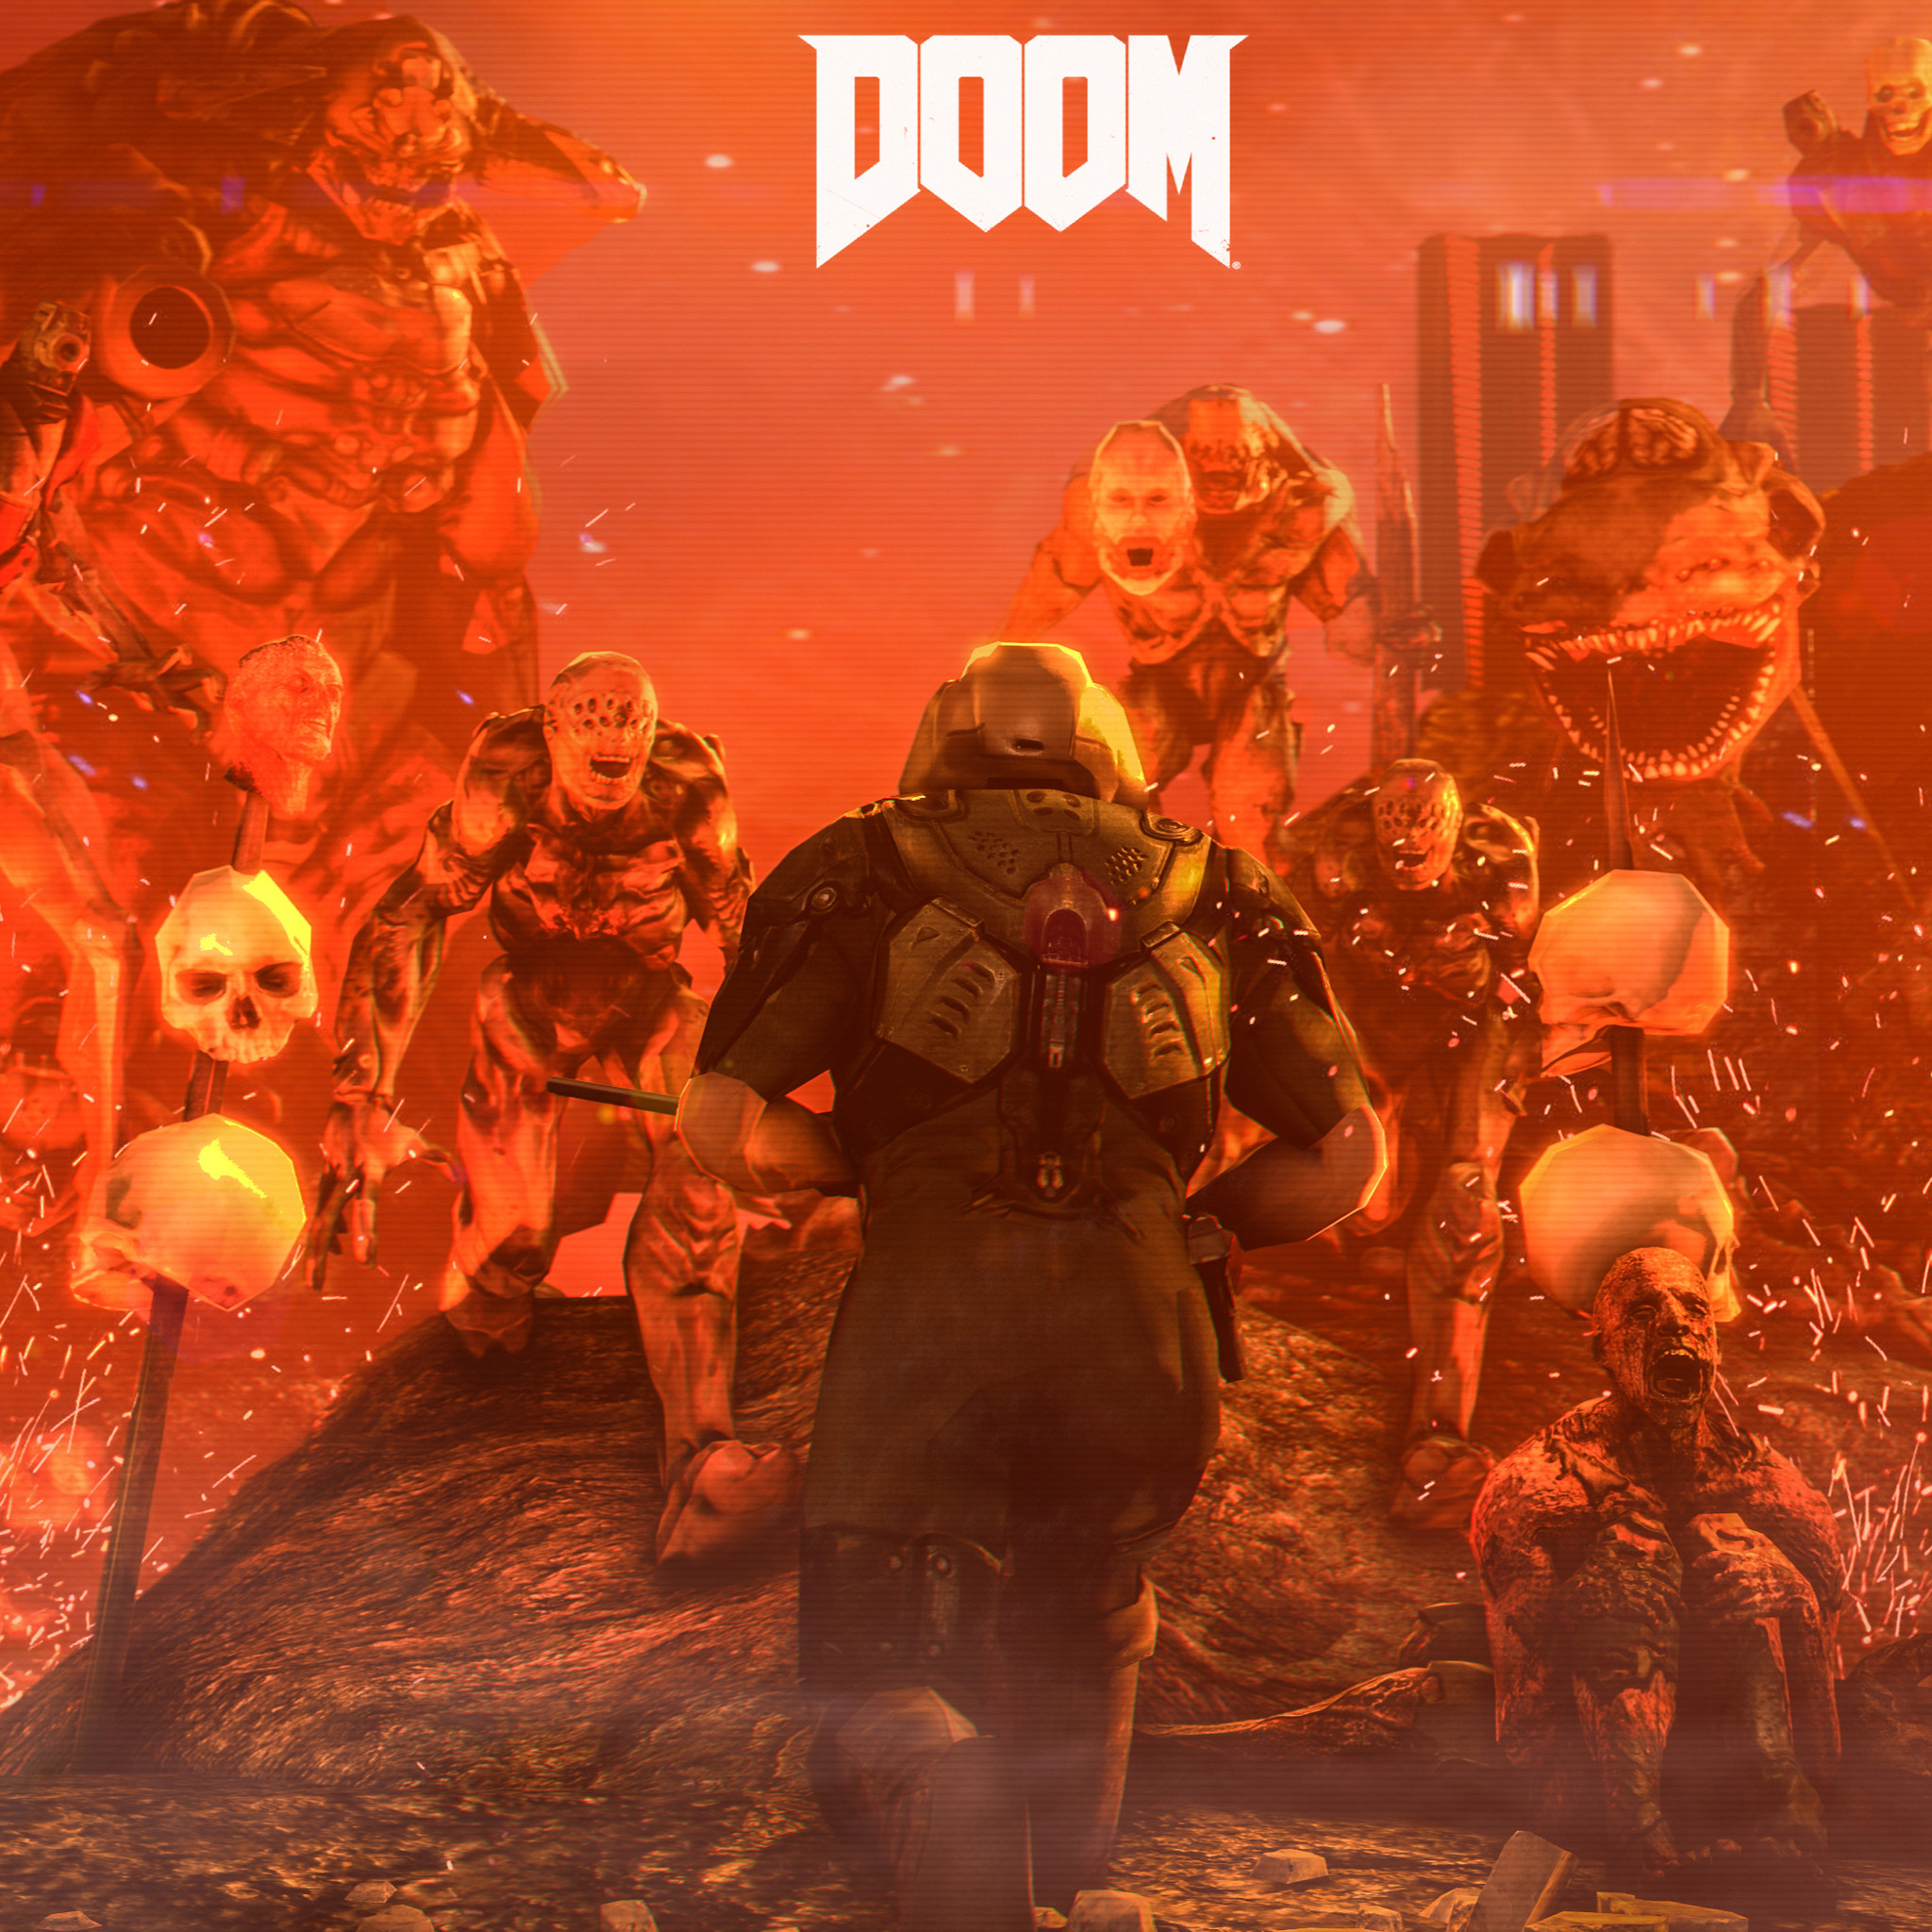 Doom Game Wallpaper (70+ Images